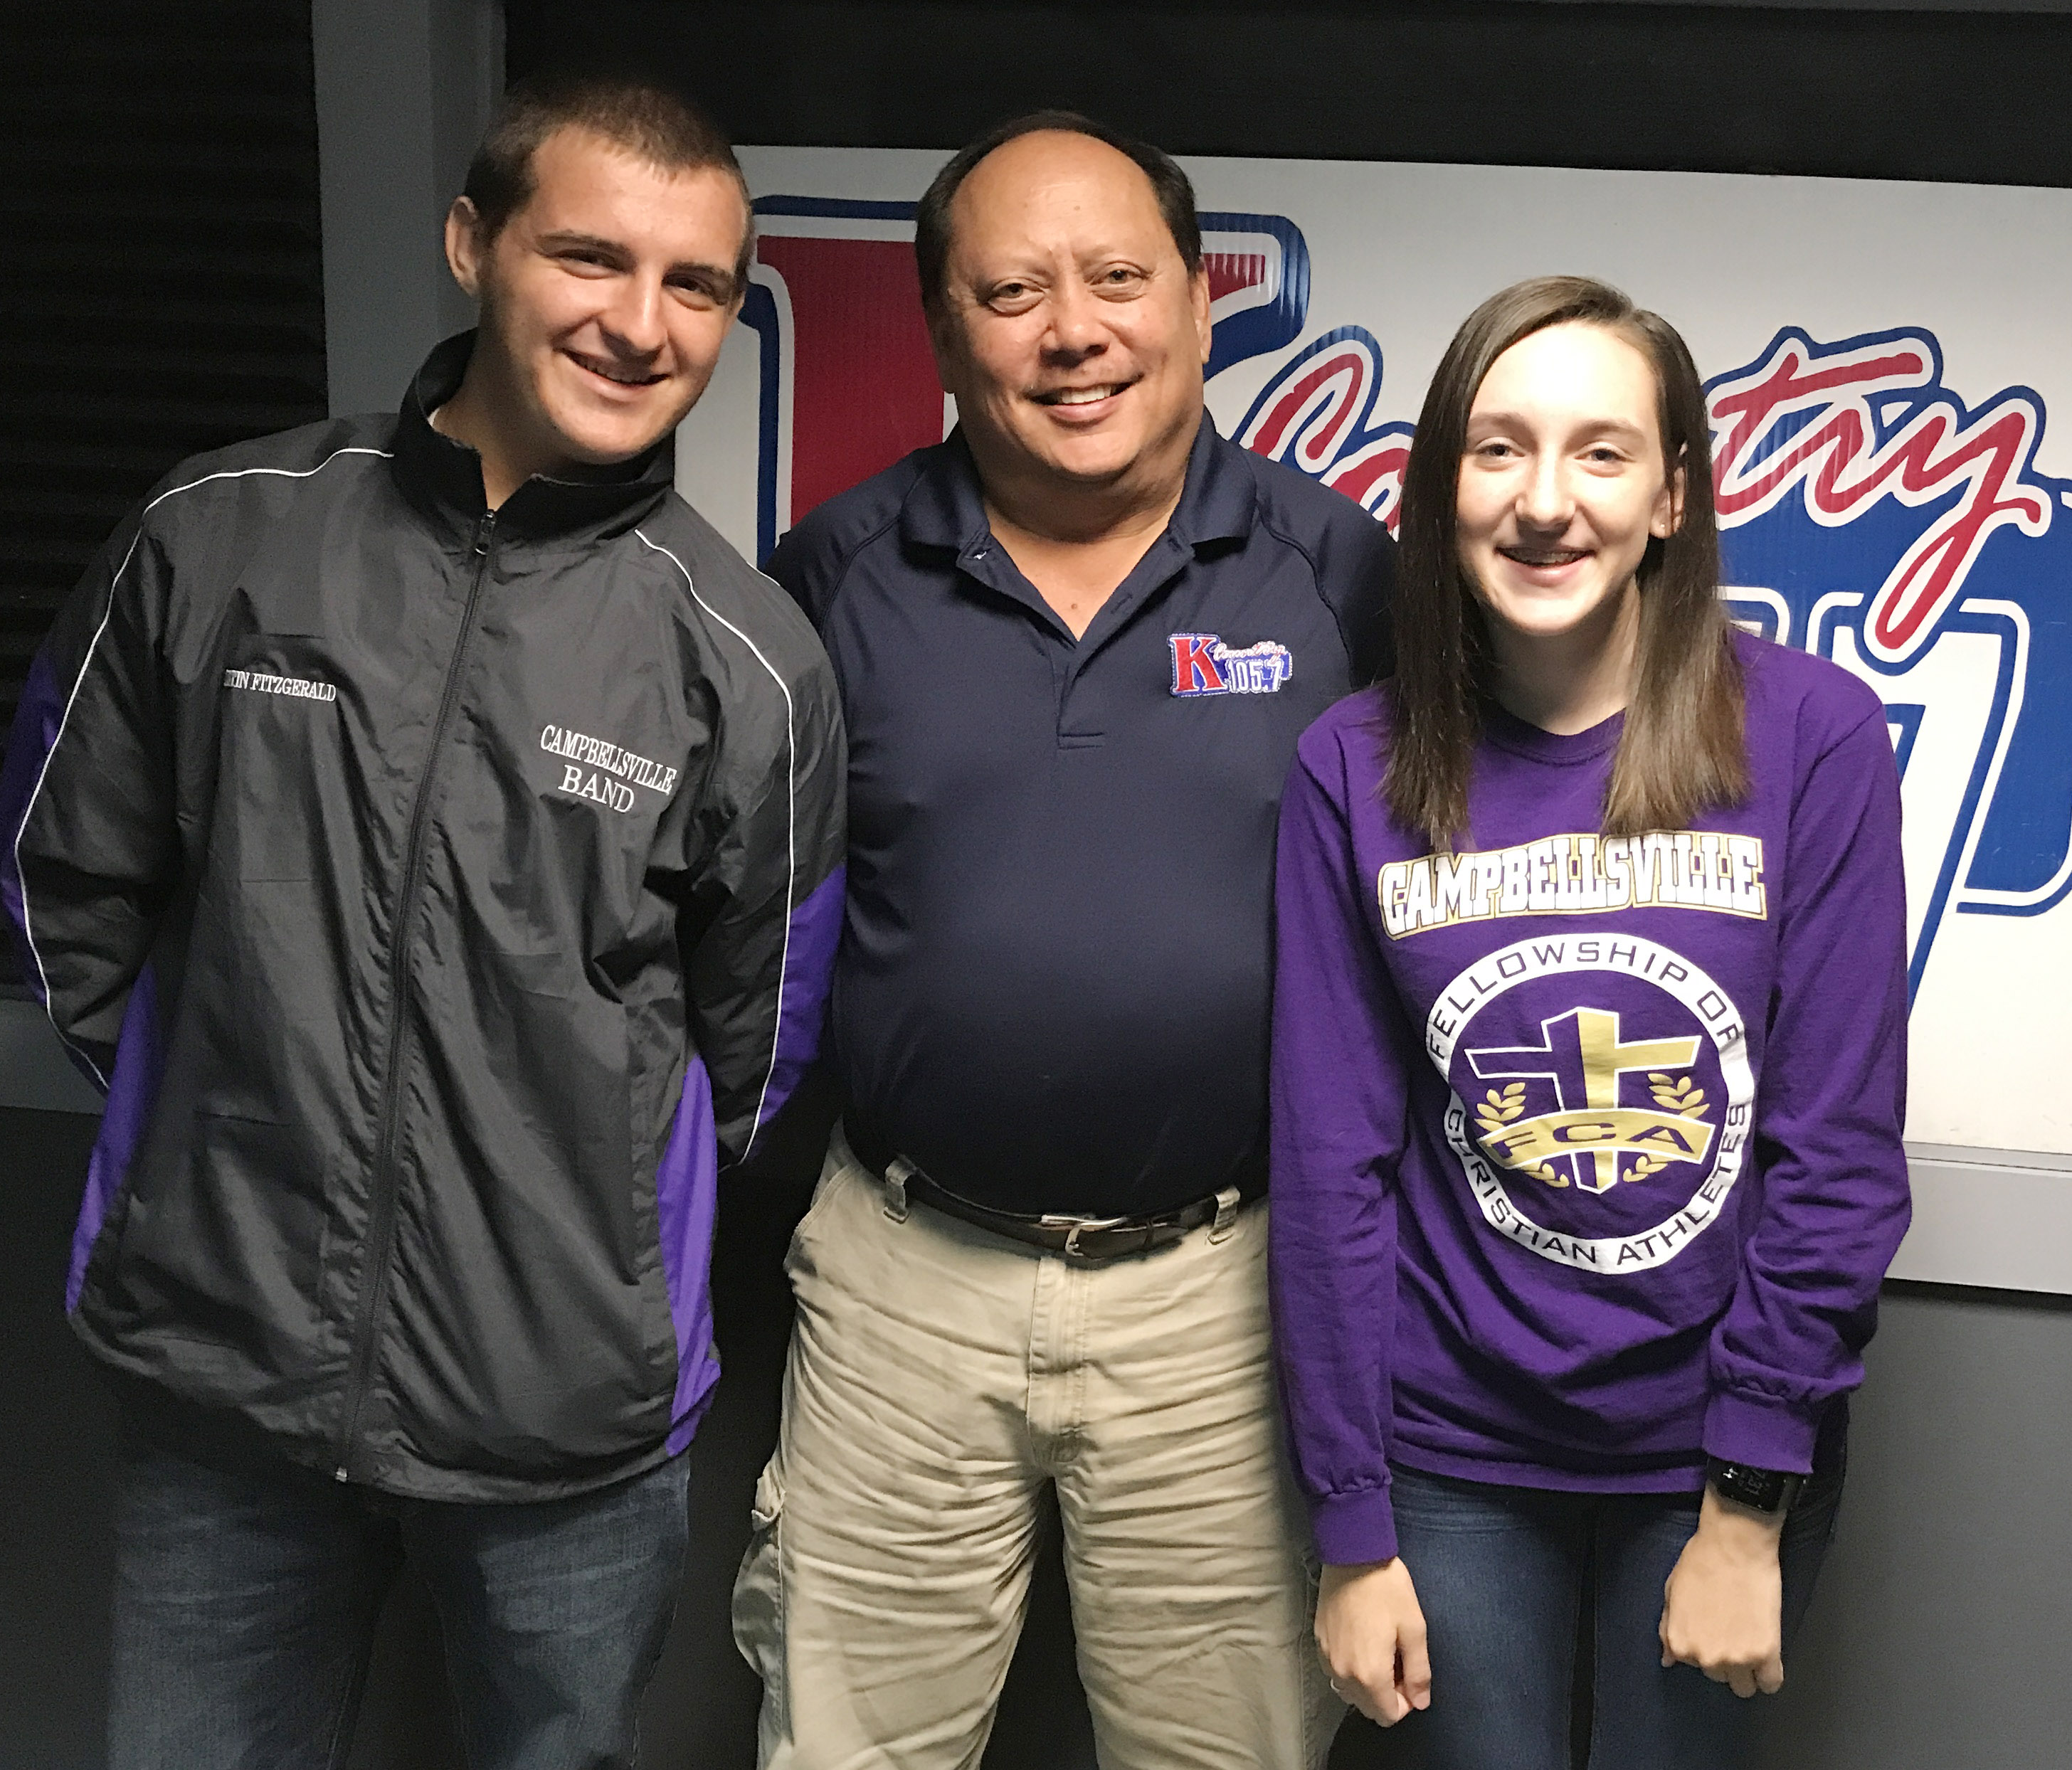 CHS sophomore Zoe McAninch and senior Austin Fitzgerald are on the air each Tuesday morning at about 7:20 a.m. with Bill Sanders on K-Country.